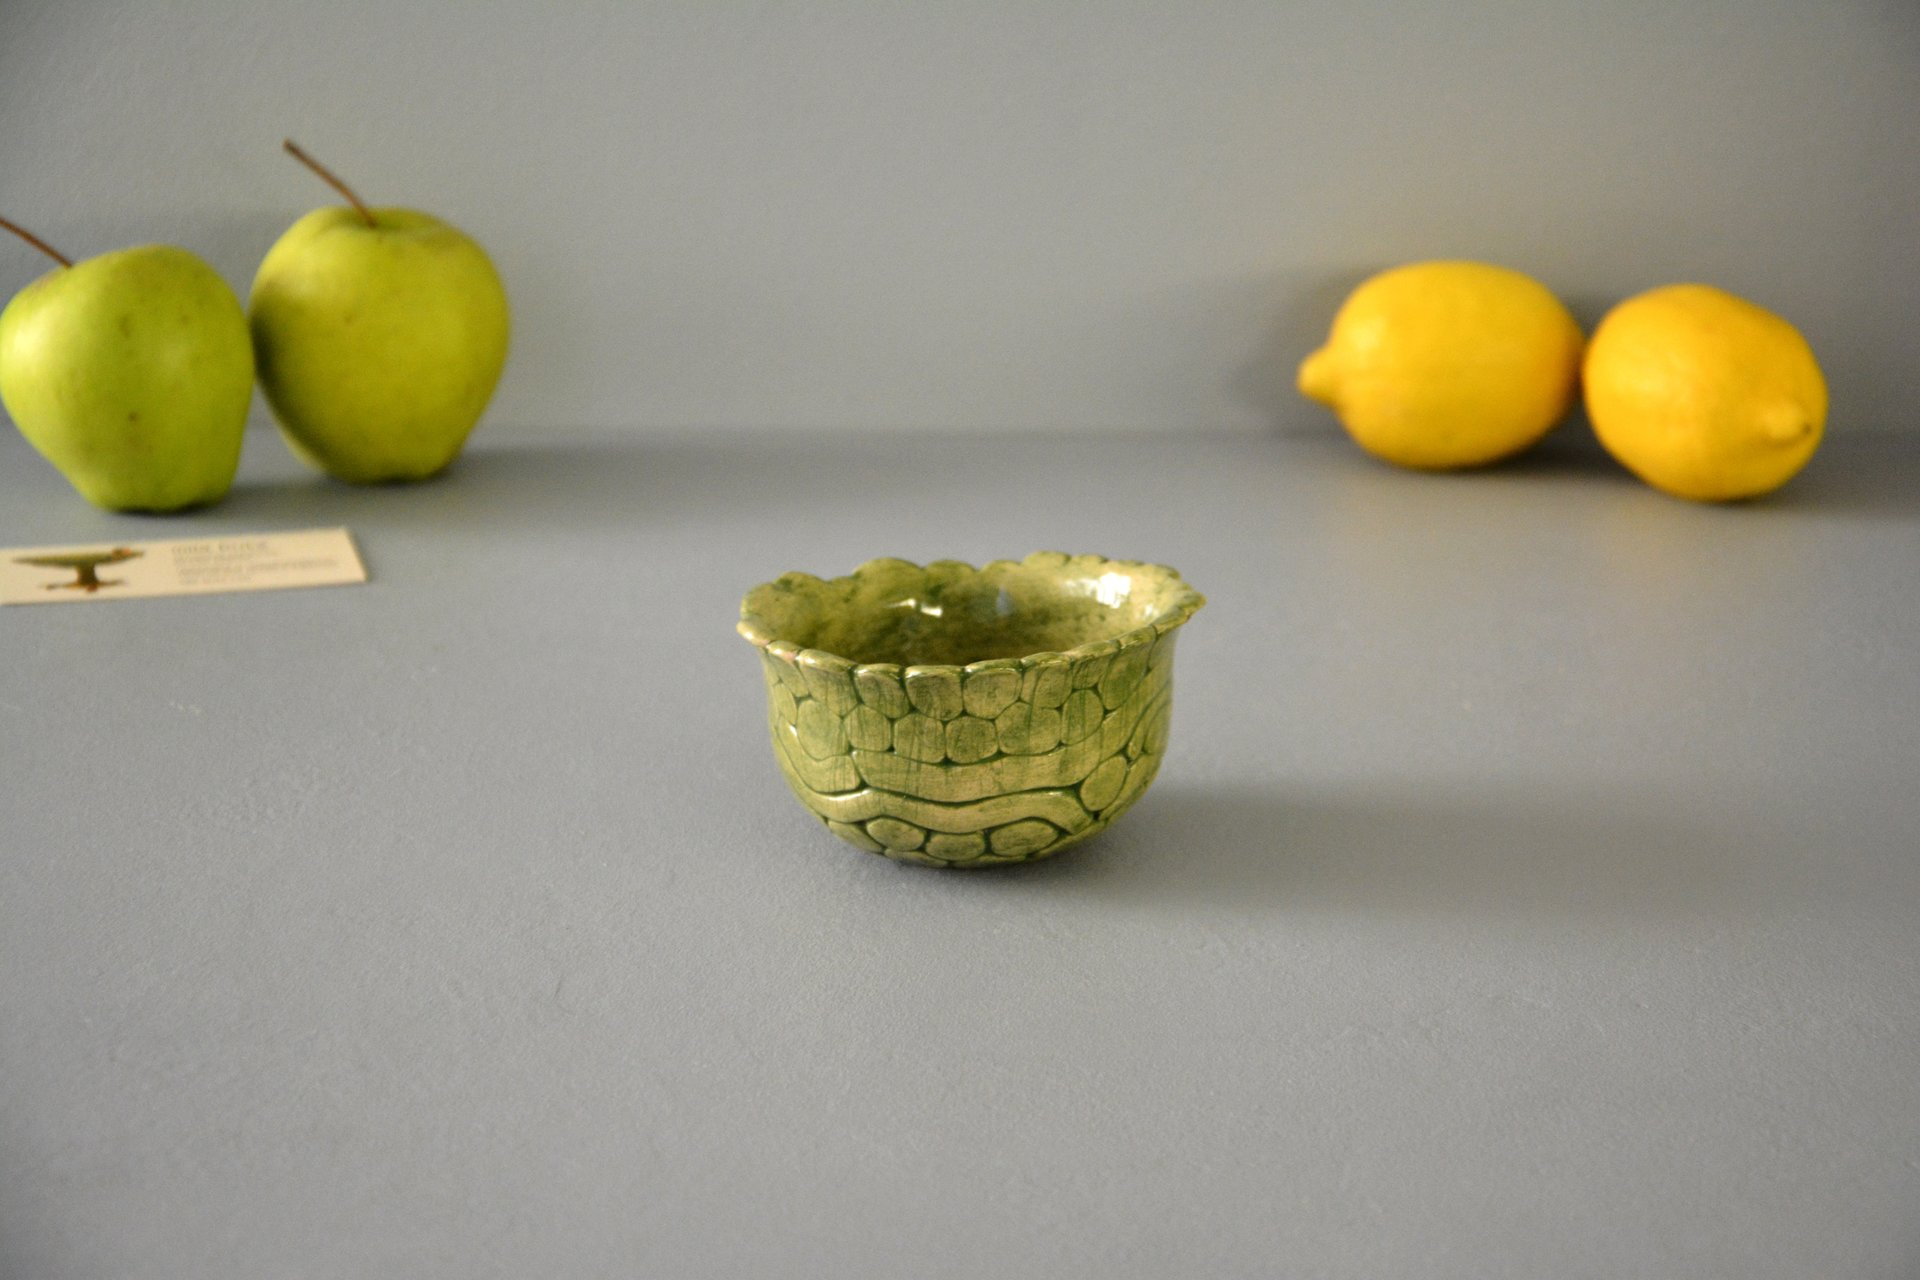 Green patina - Pialy and sauceboats, height - 5,5 cm, diameter - 10 cm, photo 2 of 3.